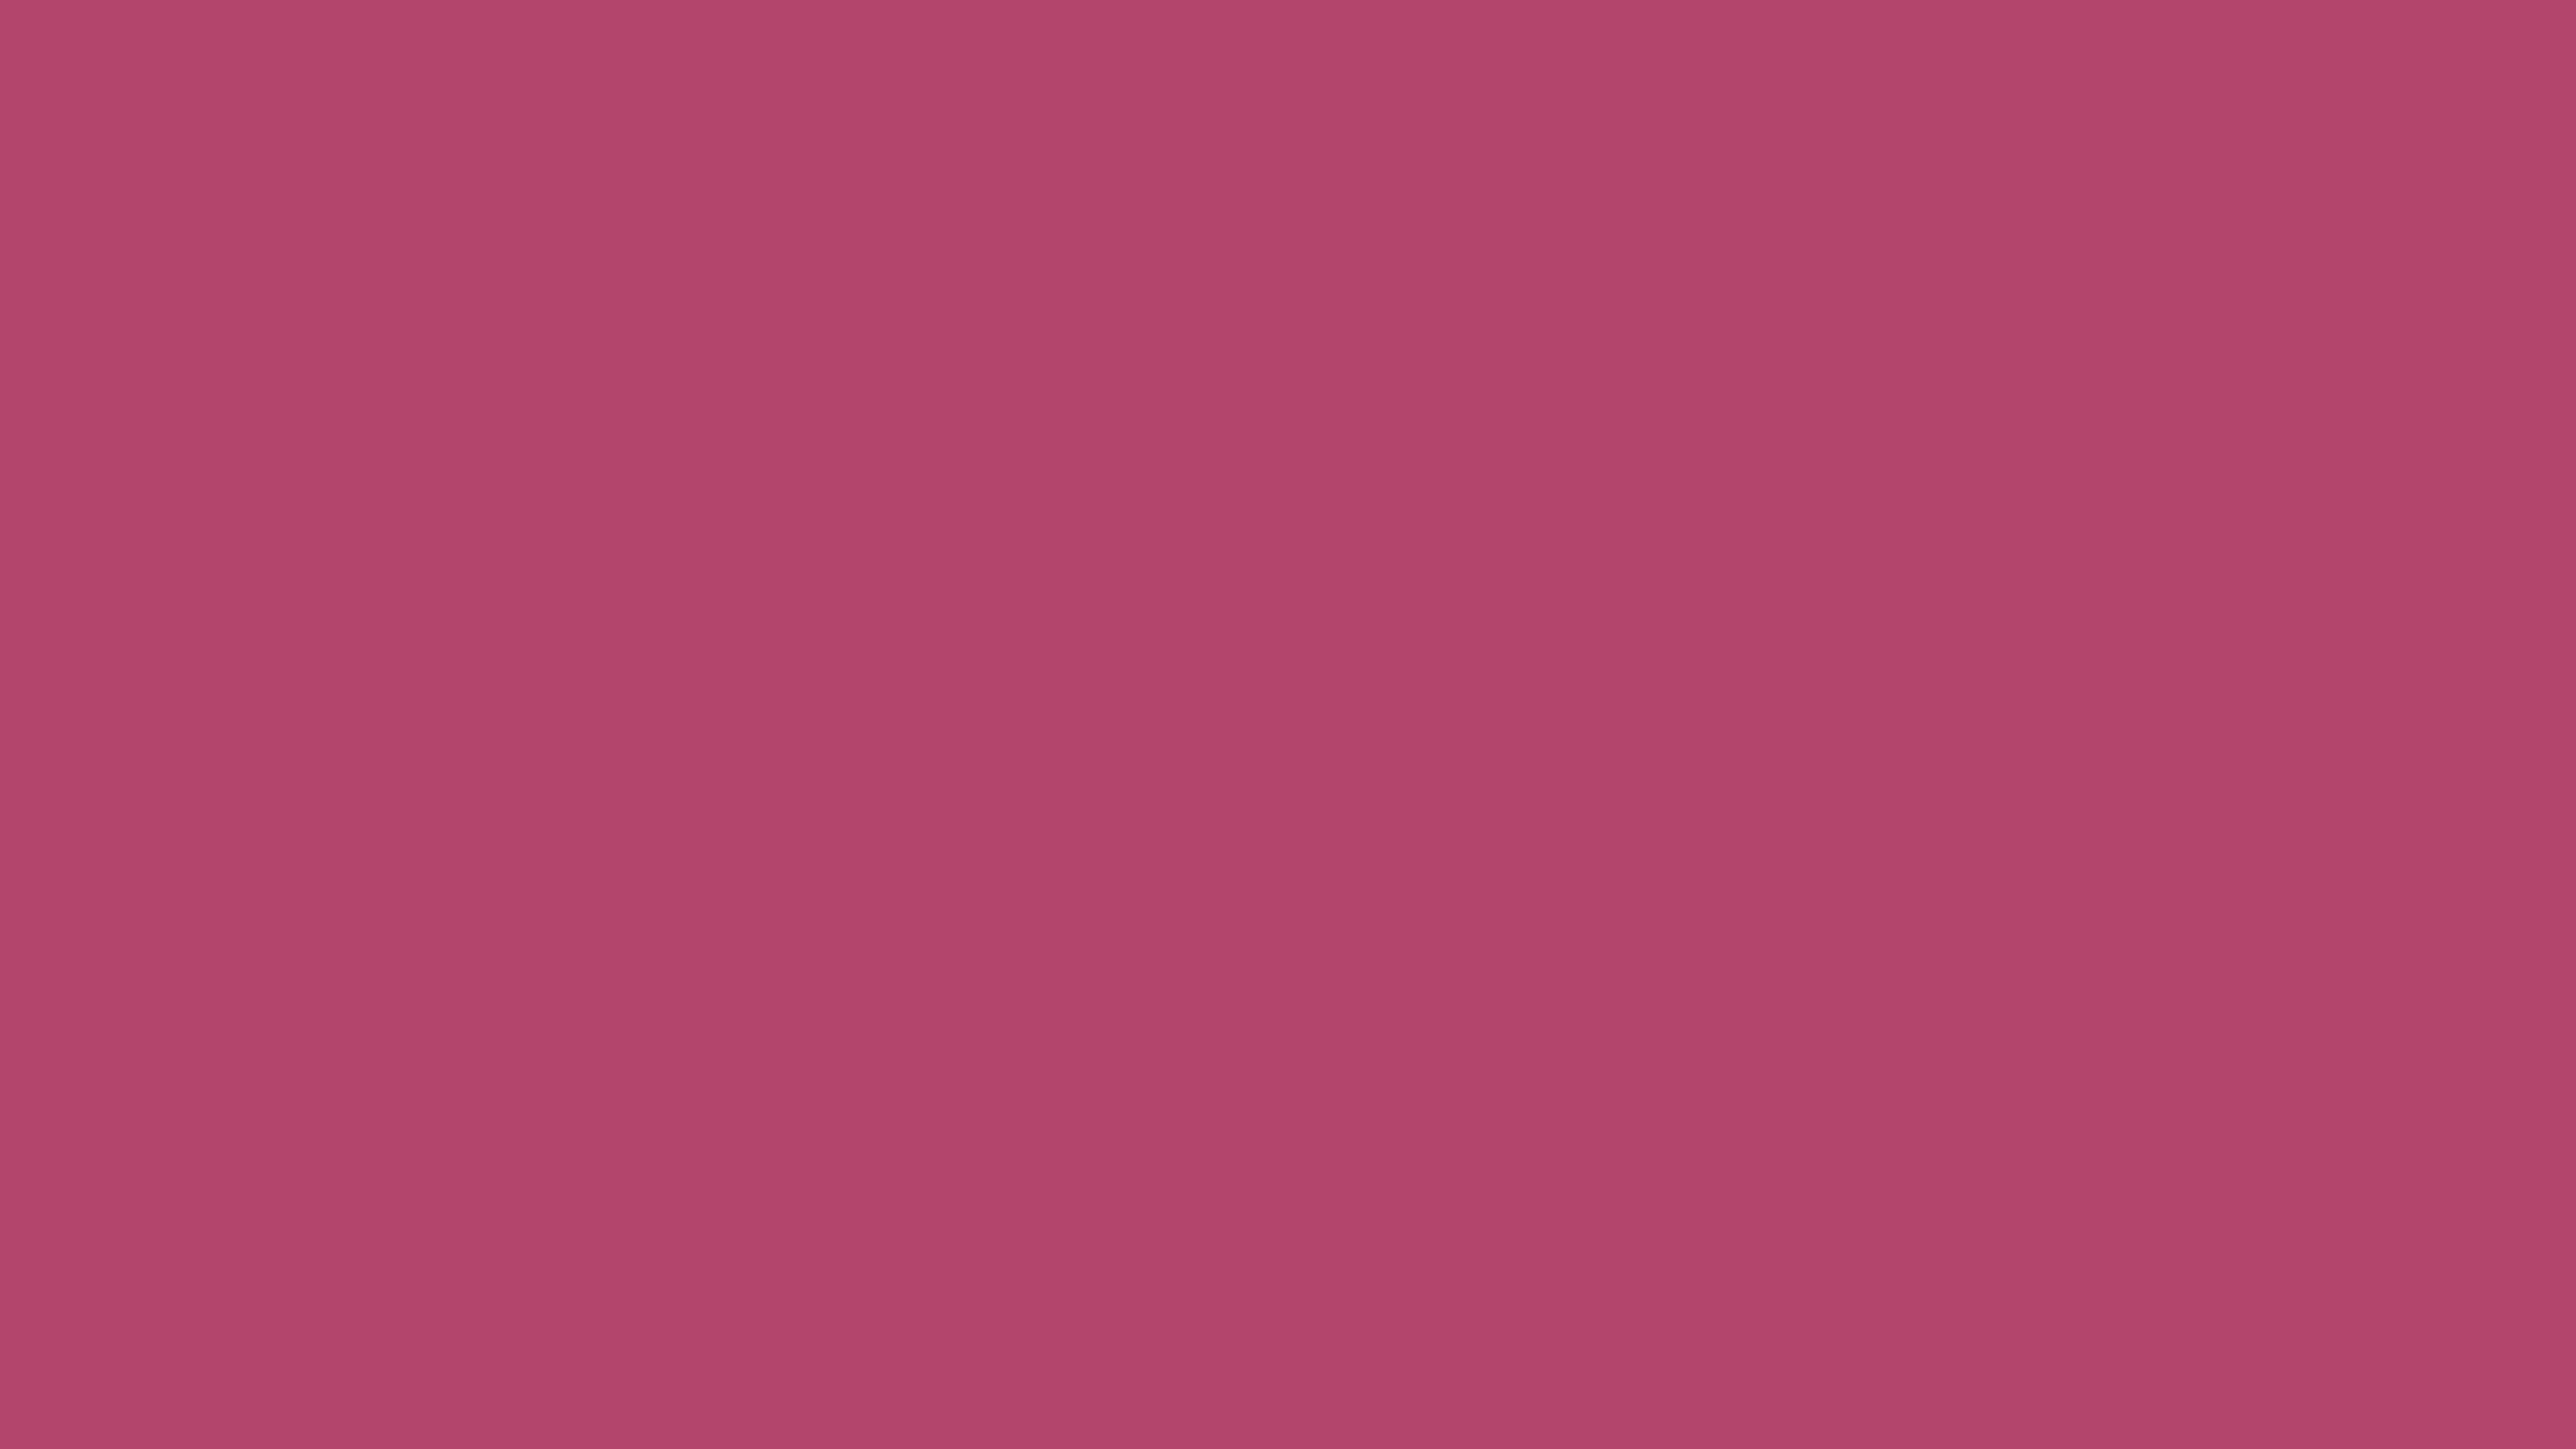 5120x2880 Raspberry Rose Solid Color Background